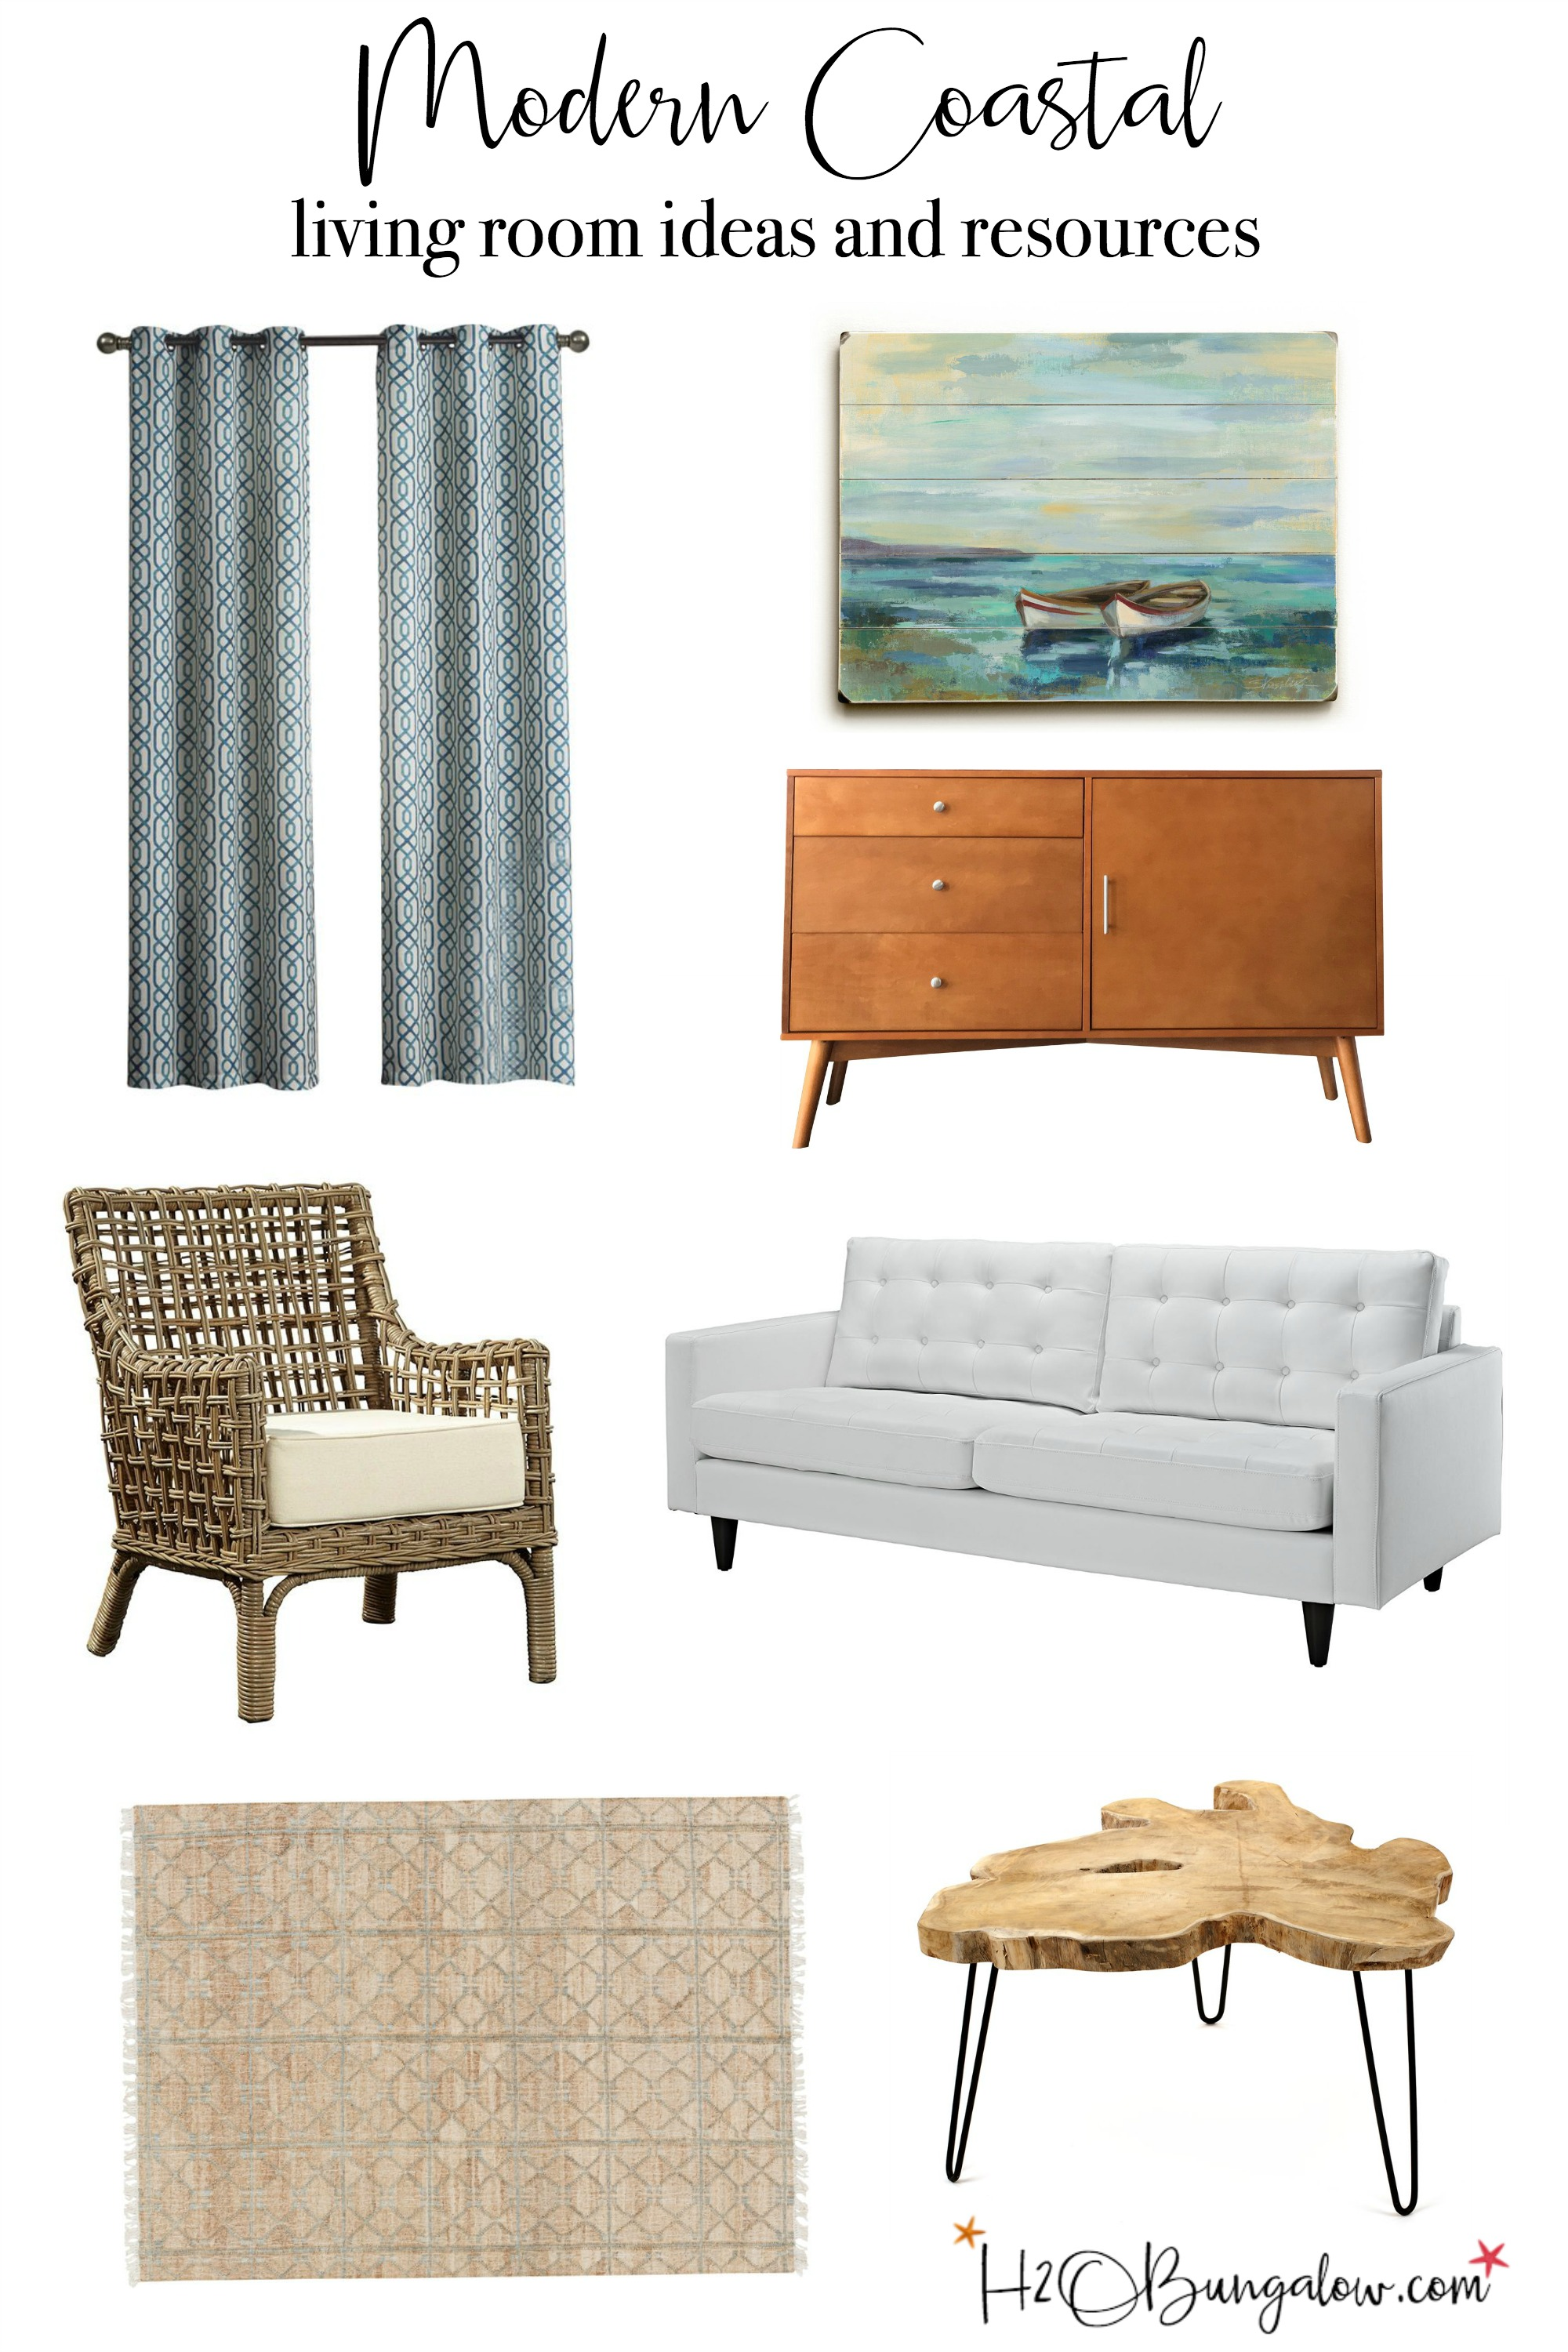 Contemporary coastal living room makeover ideas with a mood board and resources. Decorate with coastal home decor in a casual modern design style.